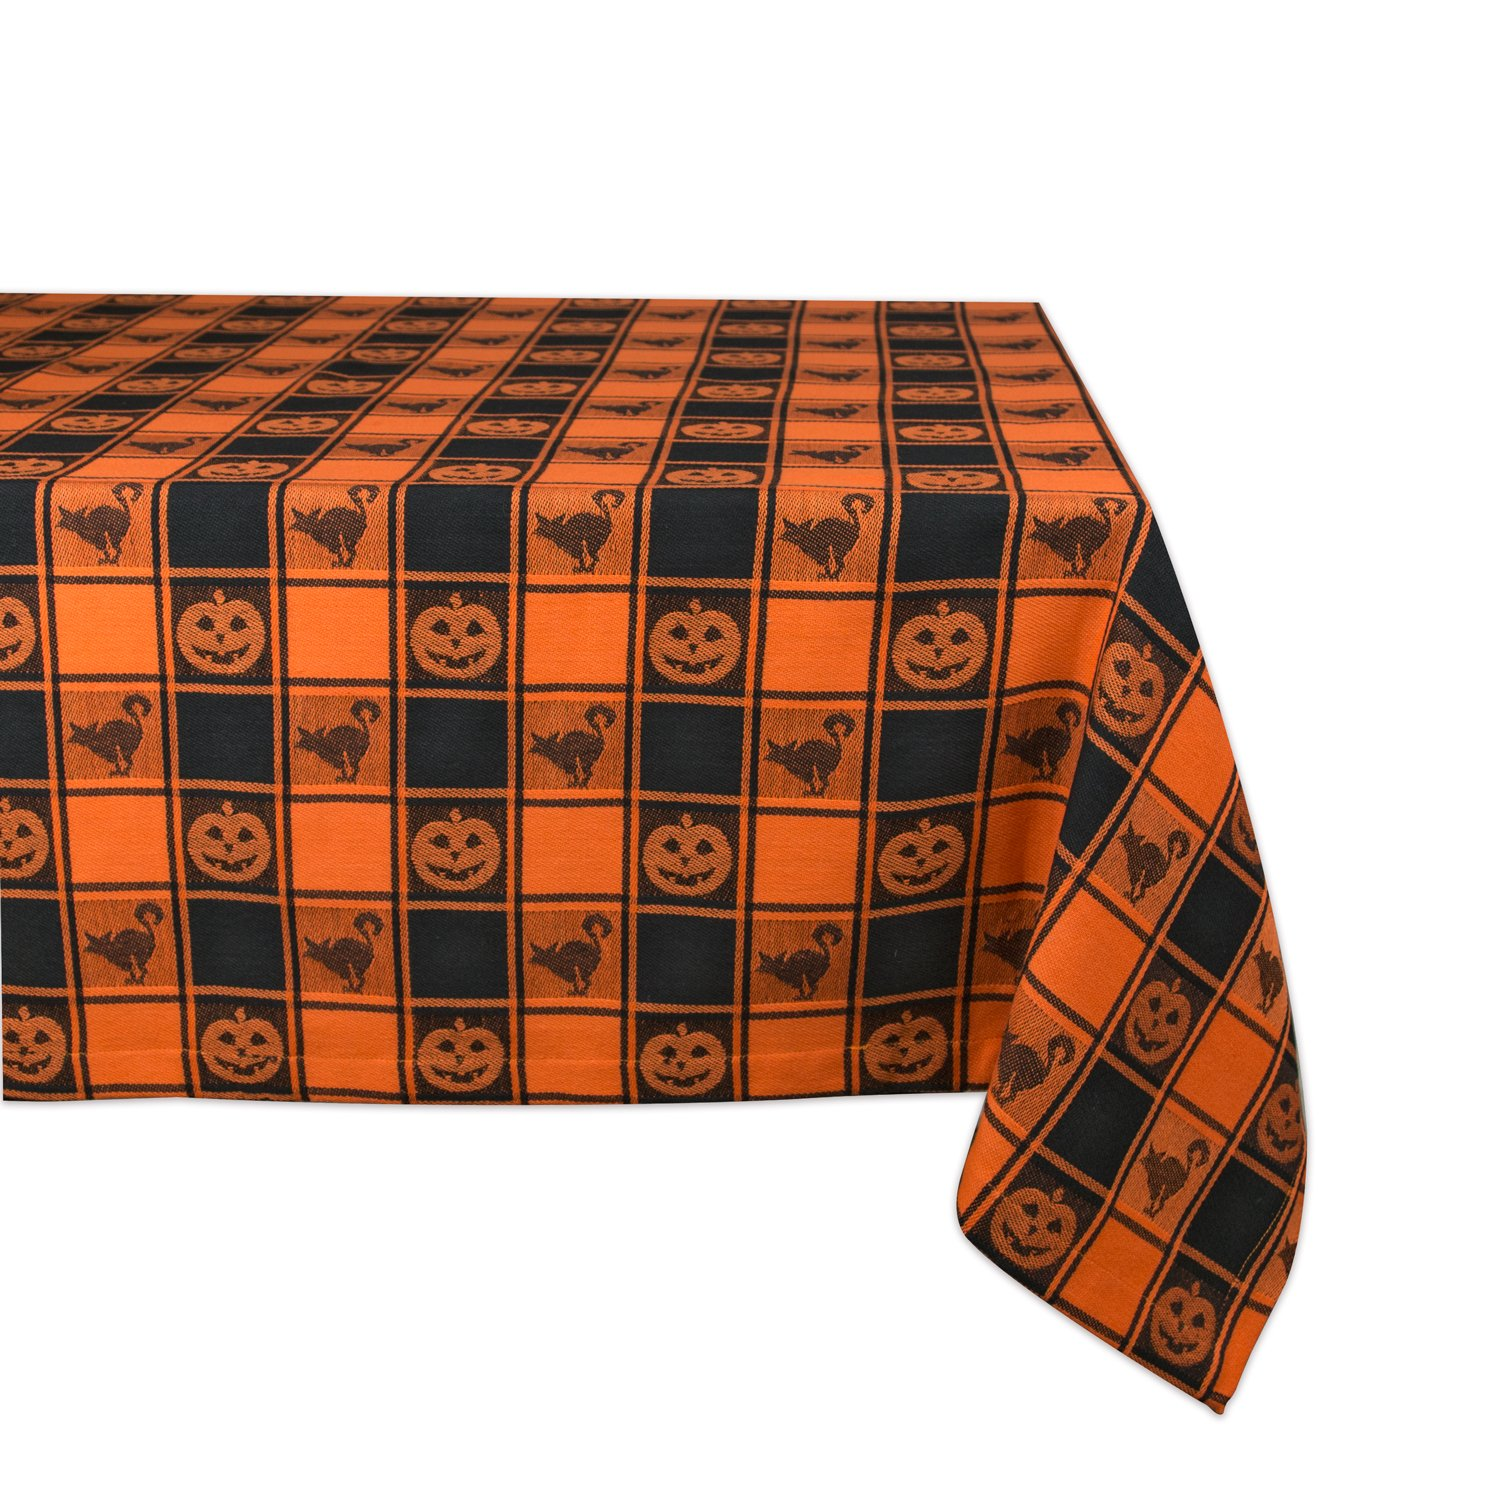 DII 60x84'' Cotton Tablecloth, Black & Orange Check Plaid with Cat & Jack O' Lantern - Perfect for Halloween, Dinner Parties and Scary Movie Nights by DII